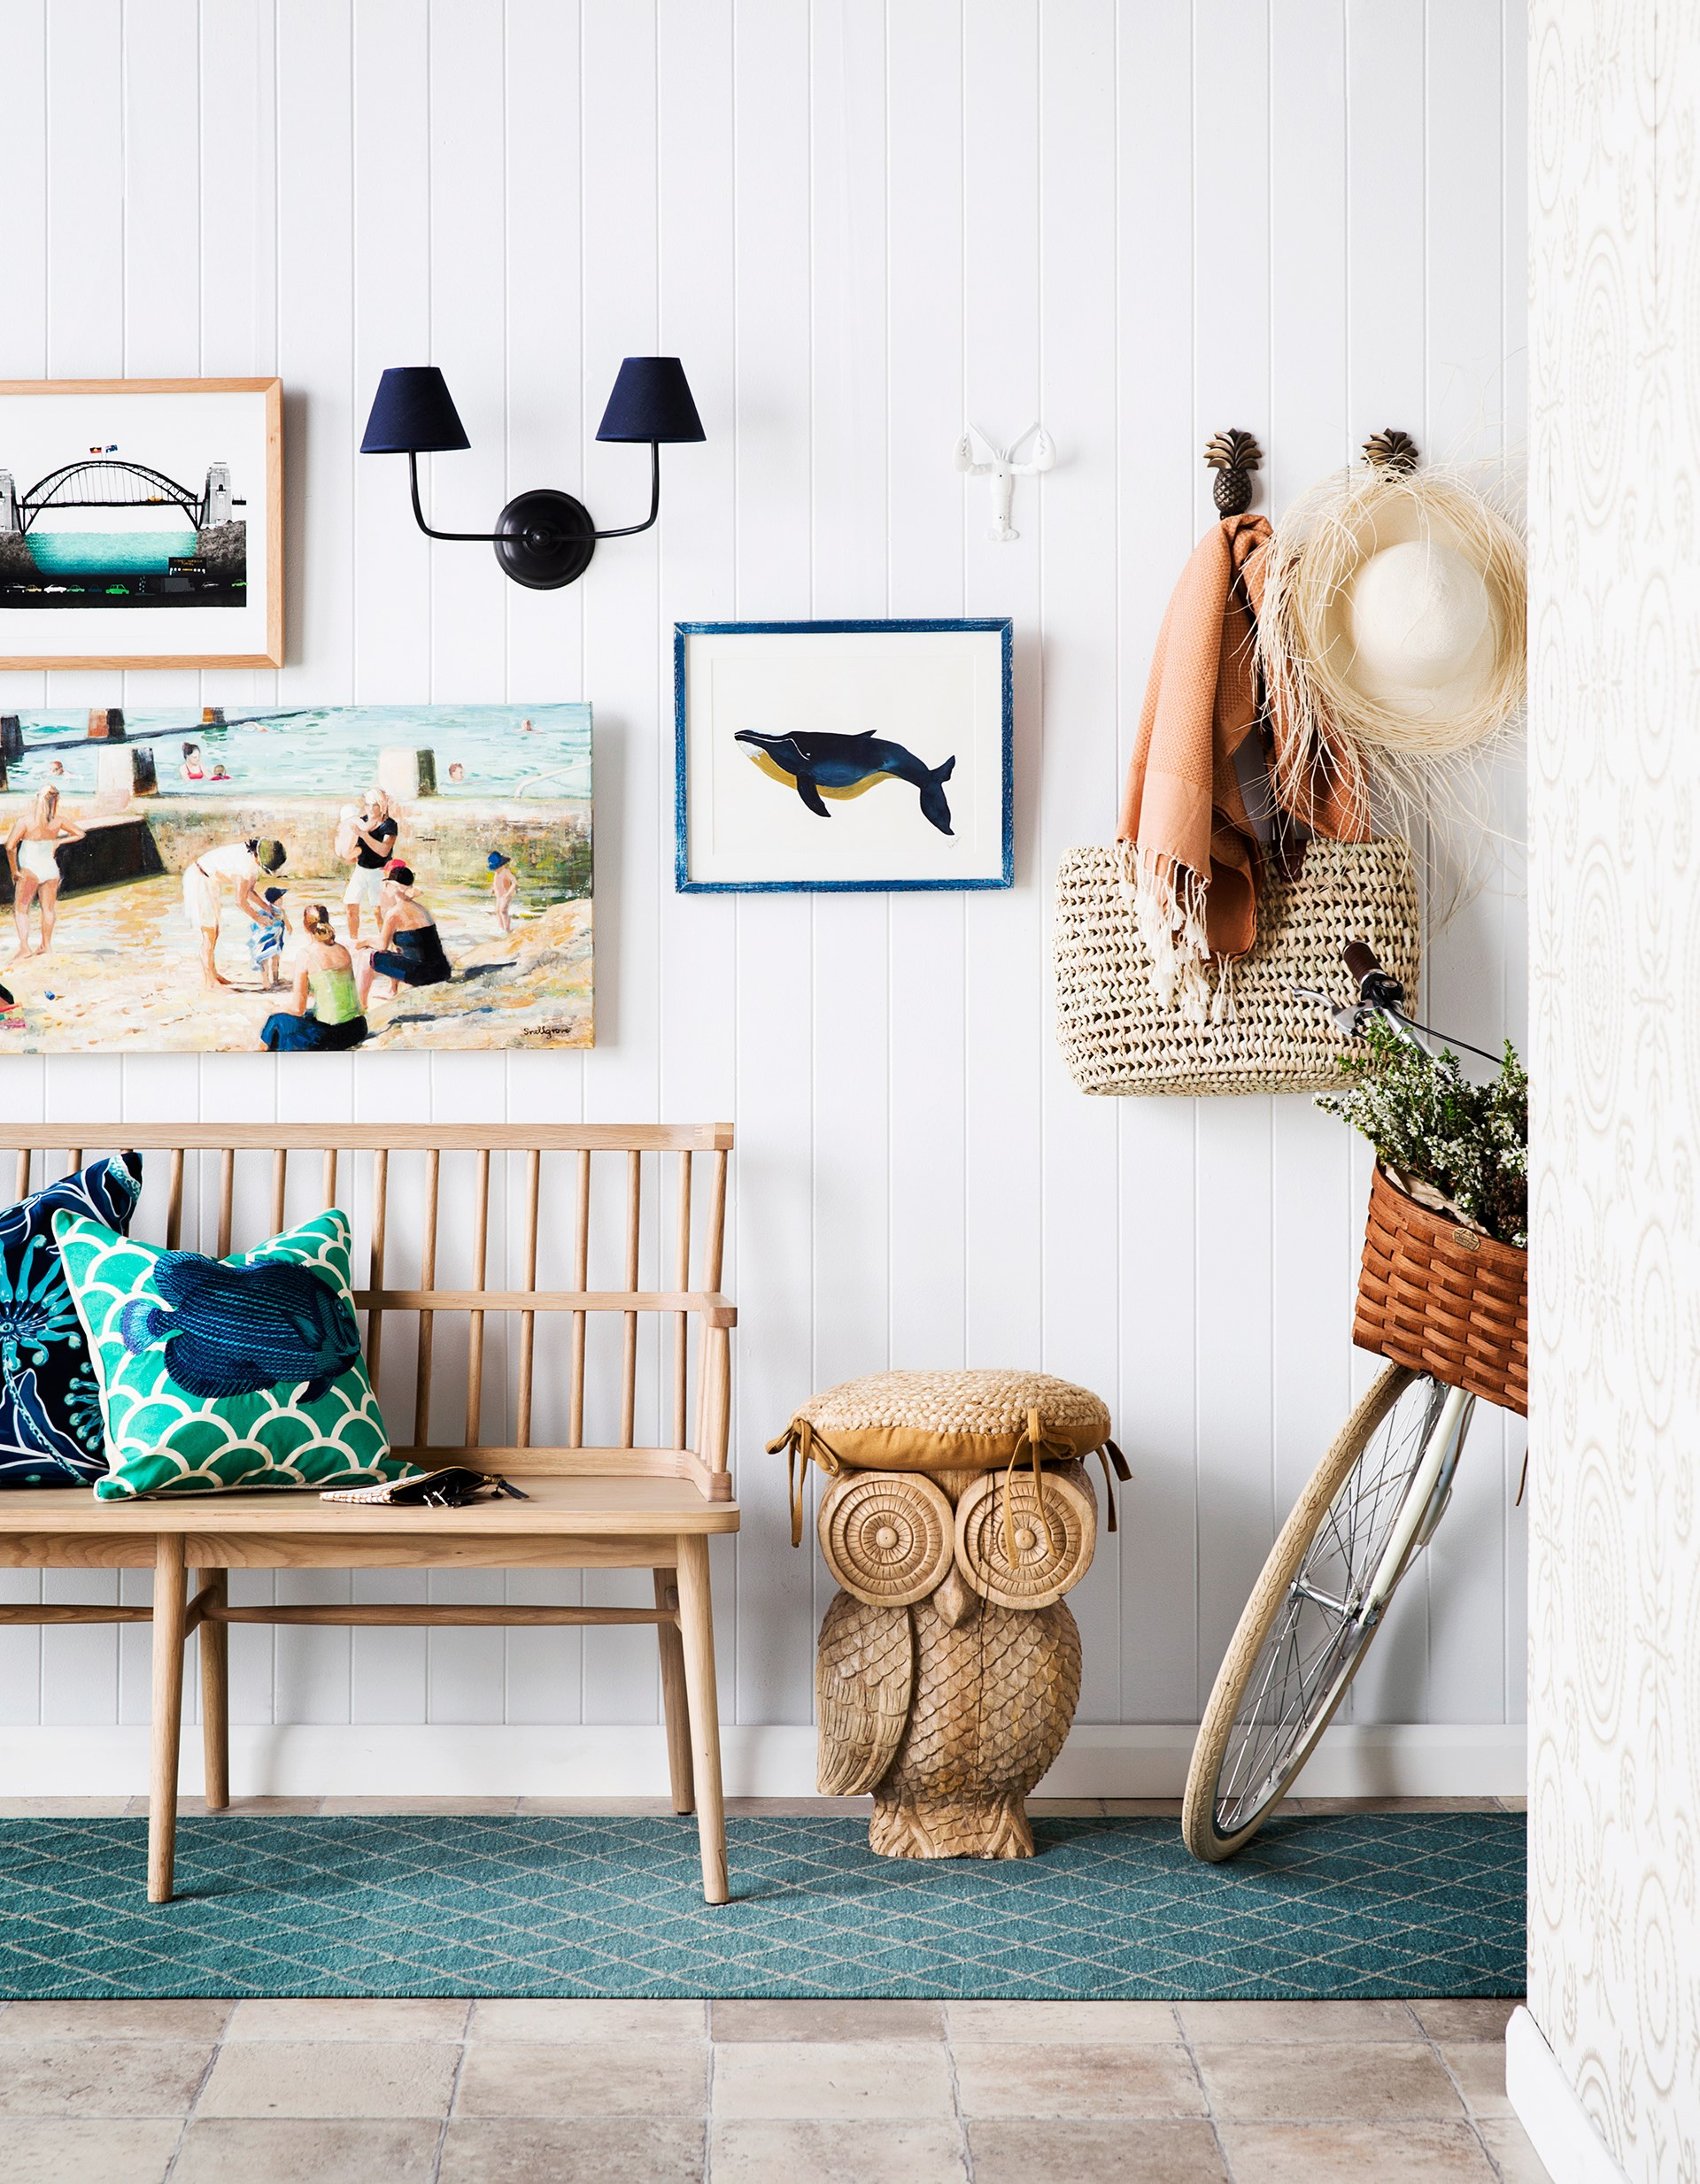 "**ON WALL FROM LEFT** Alphabetic Sydney 'H for Harbour Bridge' **print**, $120, [Koskela]( http://www.koskela.com.au/ /?utm_campaign=supplier/|target=""_blank""). Coogee Mothers by Alex Snellgrove **artwork**, $1800, Art2Muse Gallery. Visual Comfort & Co Vendome bronze **double sconce**, $720, [Laura Kincade](http://www.laurakincade.com/store//?utm_campaign=supplier/